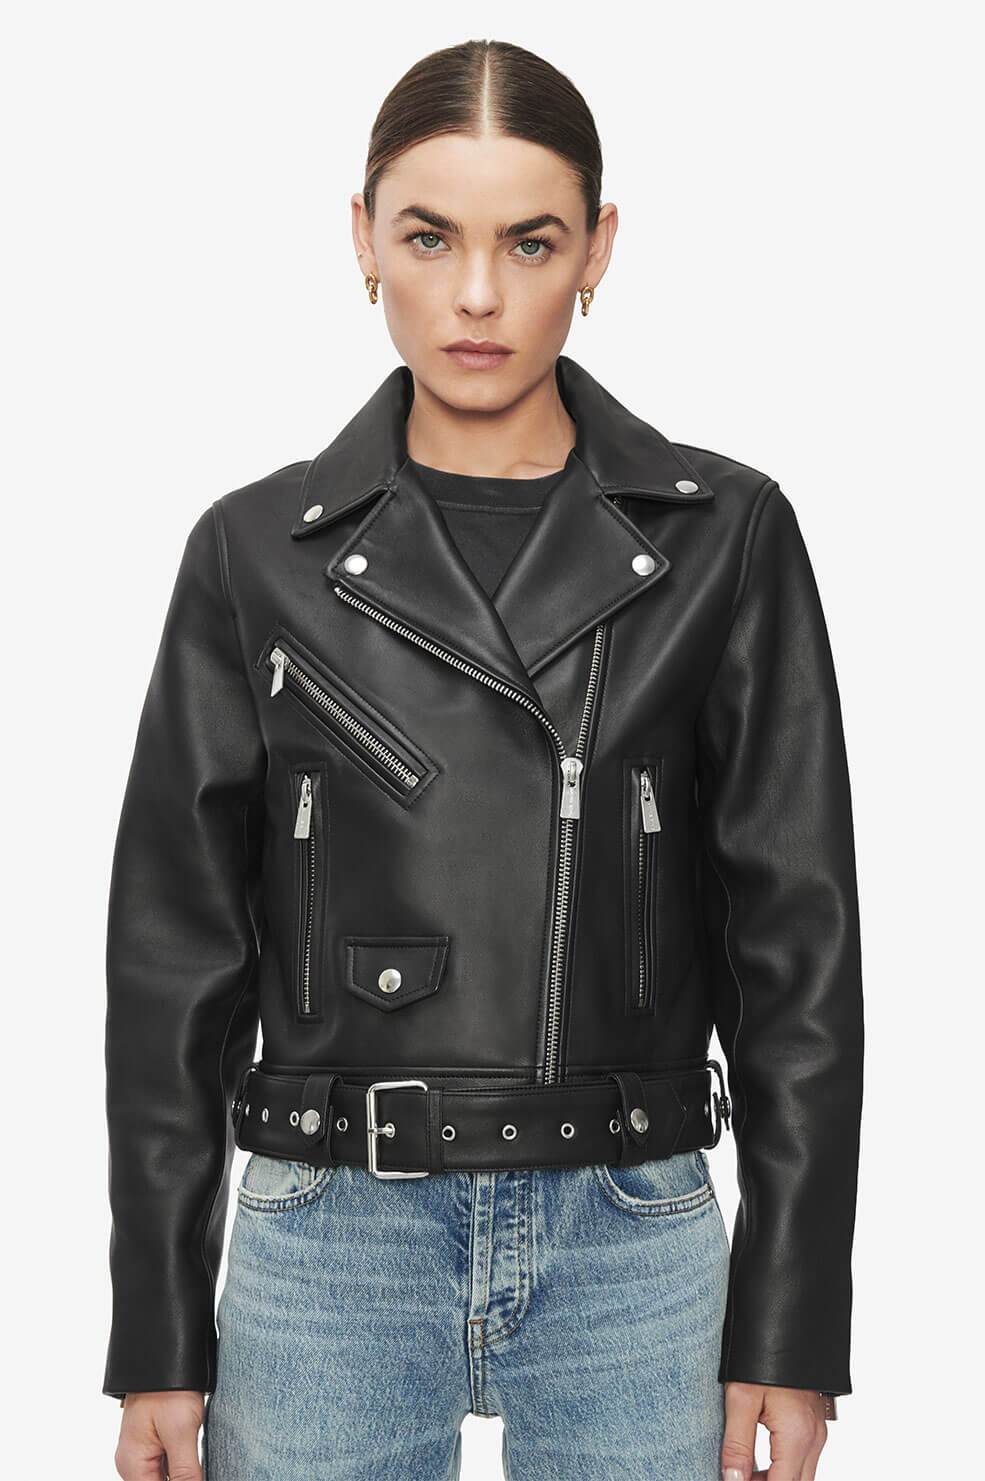 The perfecto: The black leather jacket for women The leather biker jacket is a French staple: timeless and effortless chic! Selection of the best premium leather jackets Anine Bing Benjamin